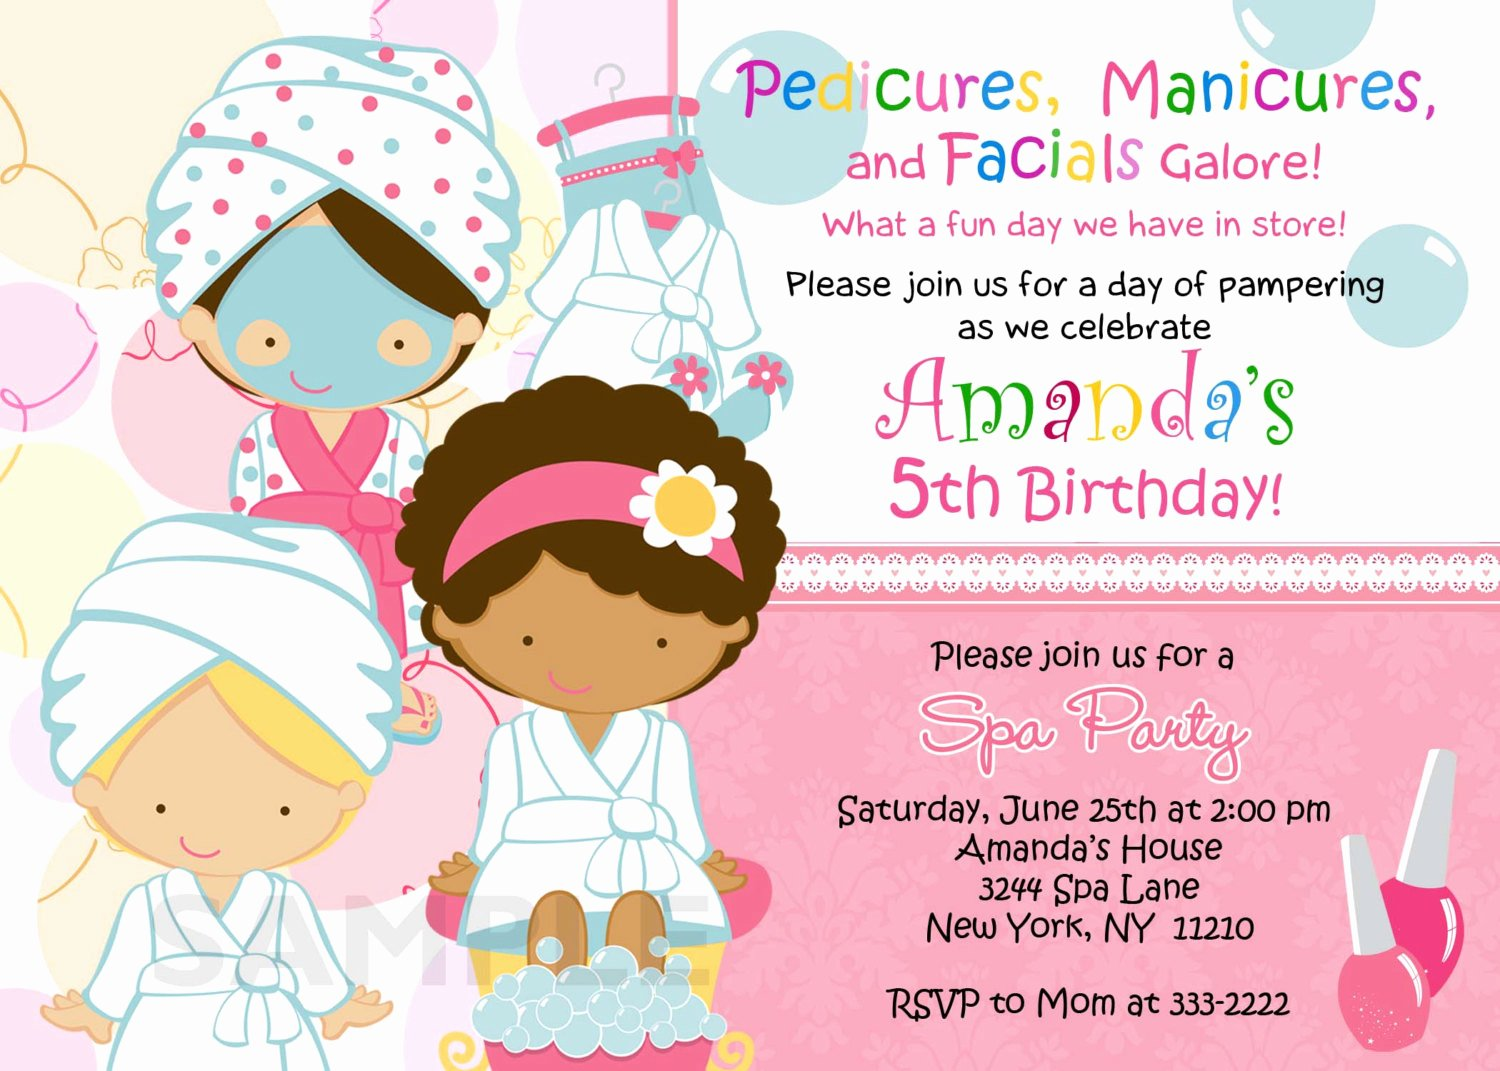 Spa Birthday Party Invitations Luxury Birthday Invitation Personalized Spa Mani Pedi Birthday